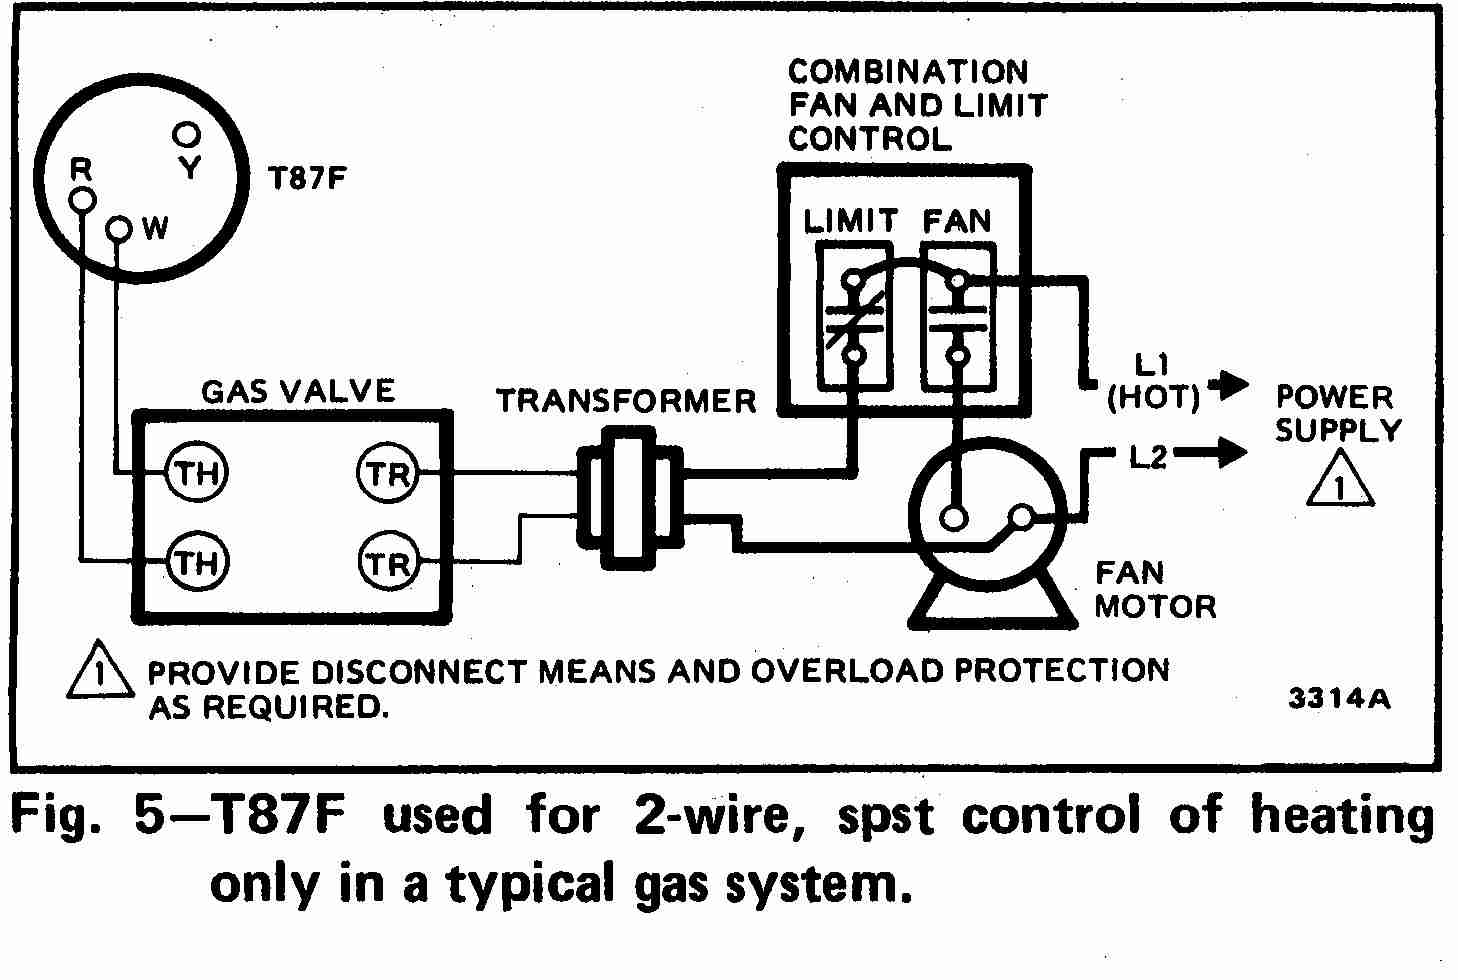 TT_T87F_0002_2Wg_DJF room thermostat wiring diagrams for hvac systems imit boiler thermostat wiring diagram at mr168.co